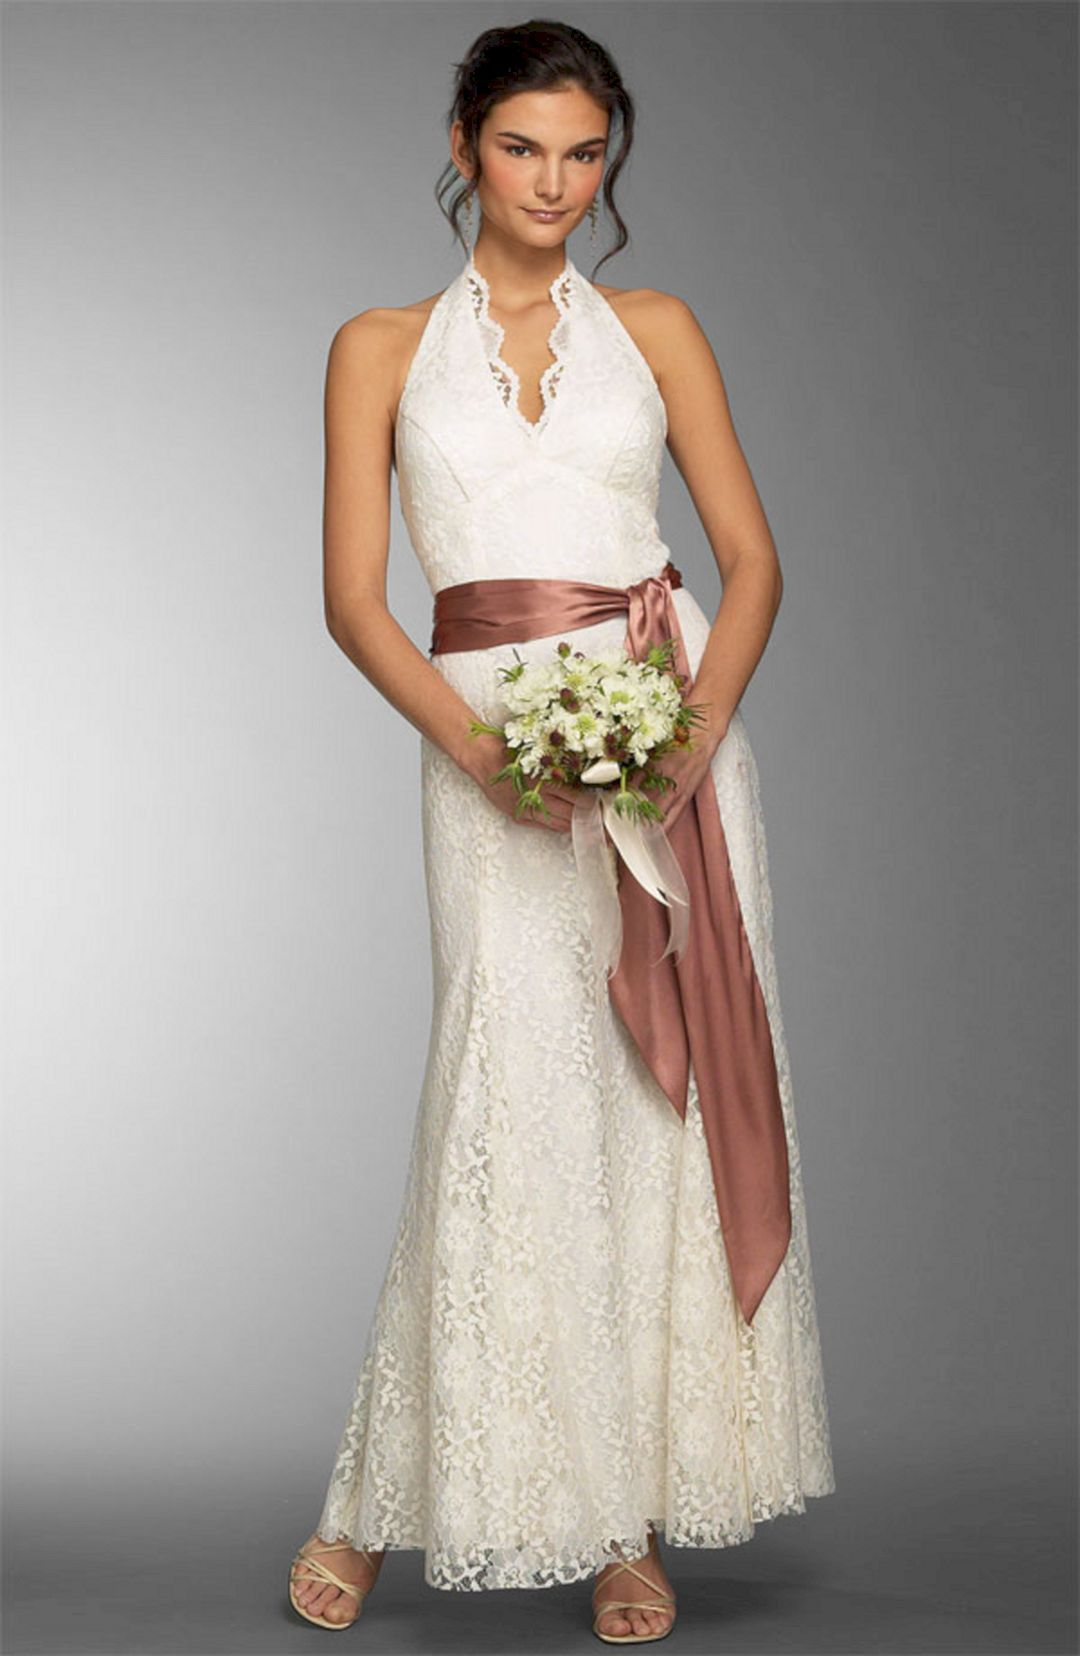 Gloomy Beautiful 30 Summer Casual Wedding Dresses Ideas Https Oosile Com Beautiful Casual Beach Wedding Dress Informal Wedding Dresses Casual Wedding Gowns